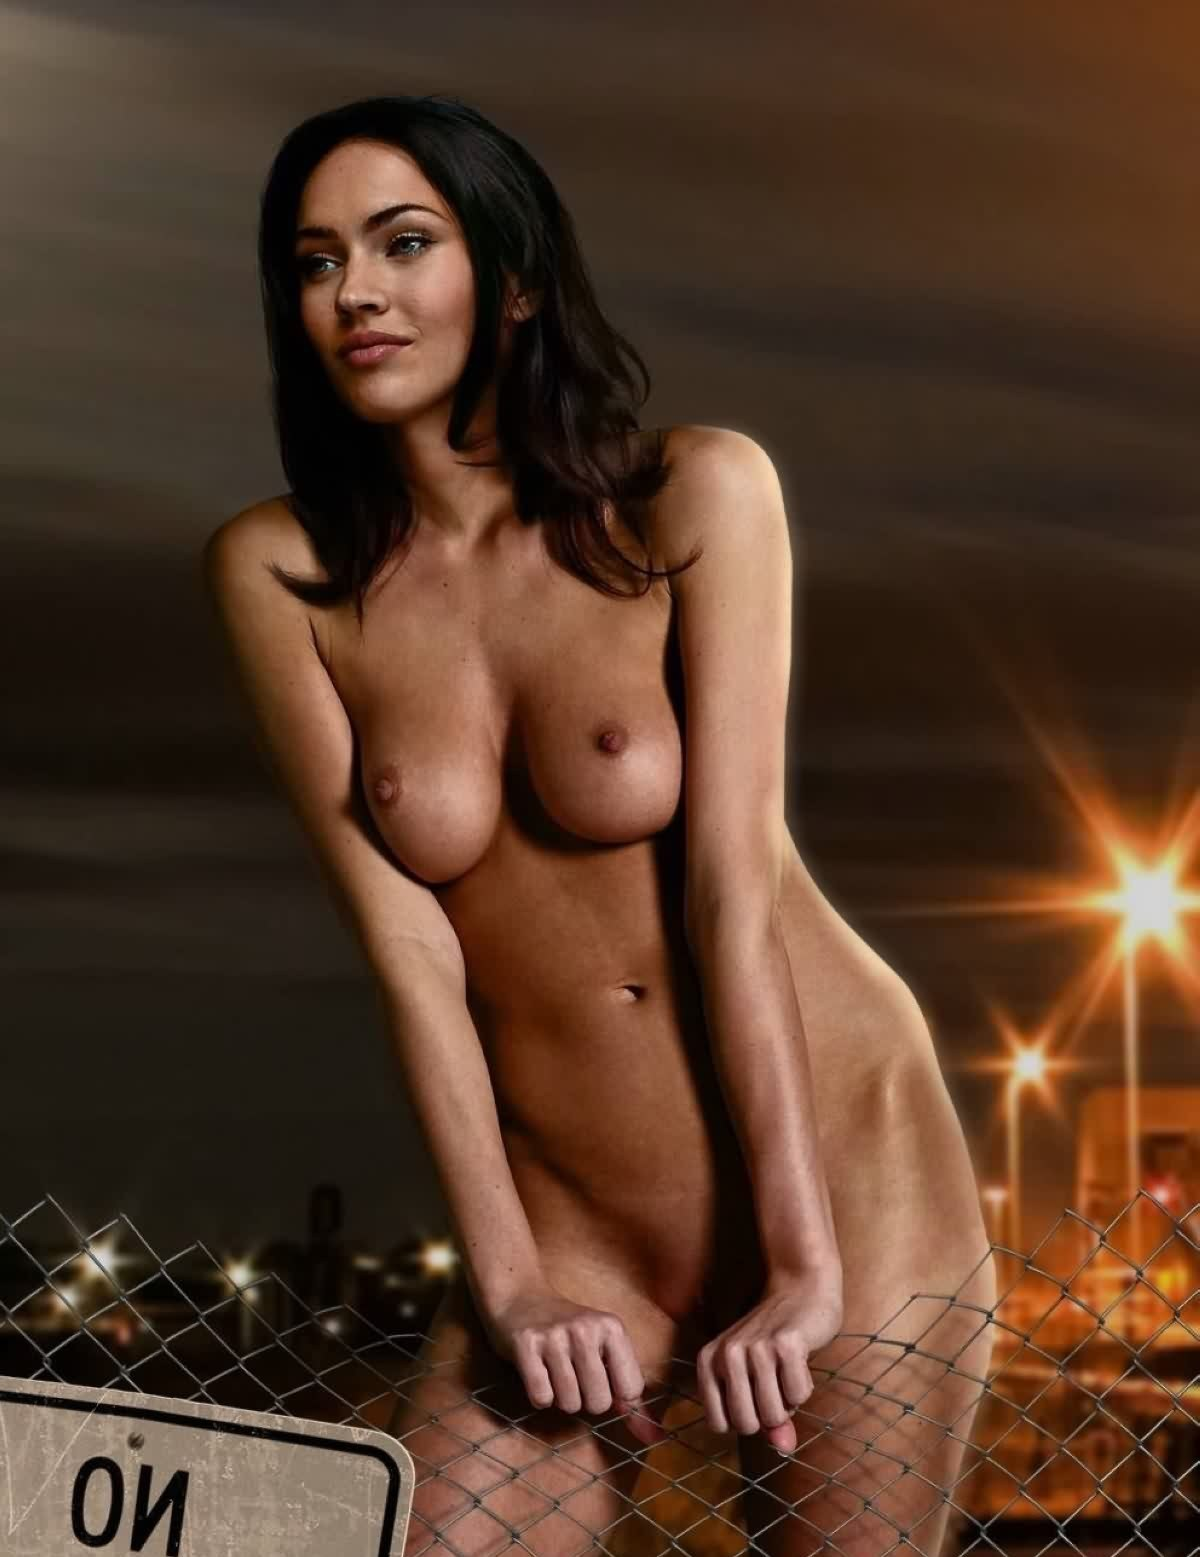 Megan Fox Nude Photoshoot - 56 Collection Megan Fox Hot Nude xxx Pics